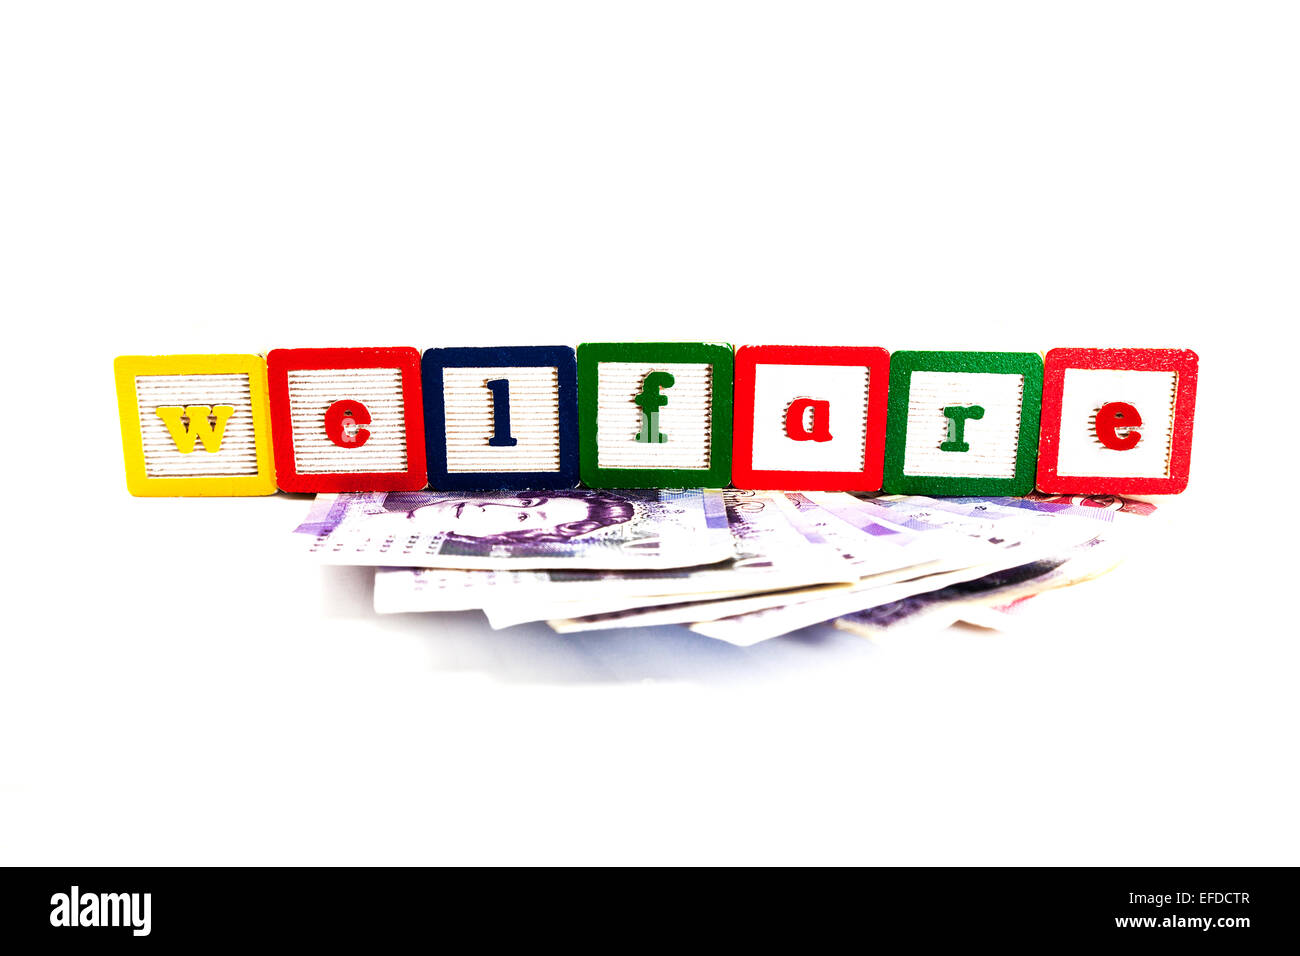 welfare rate cuts expense rise claim money fund funds cash help means cut out copy space white background - Stock Image